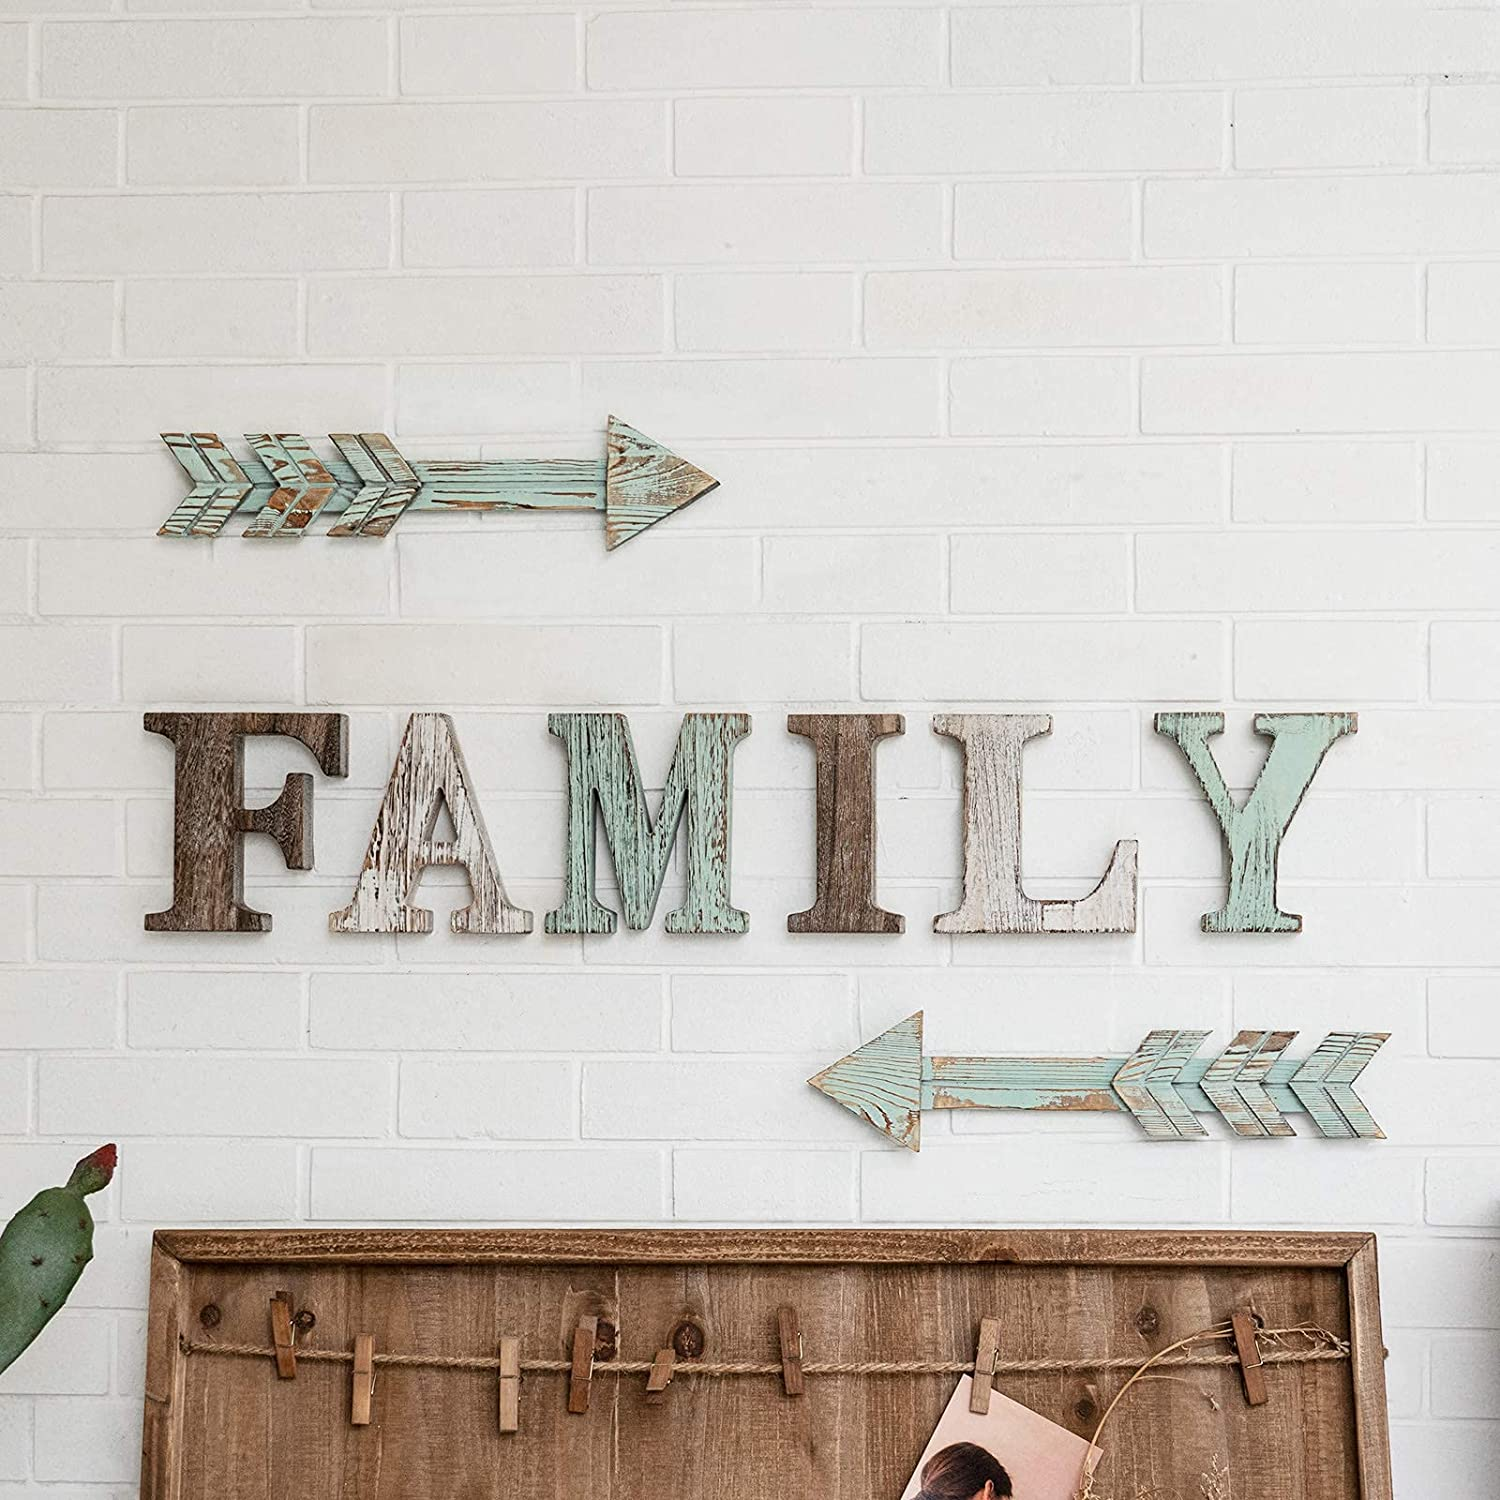 TIMEYARD Family Wooden Sign and Arrow Wall Decor Set of 2, Letters for Wall Decor Green Room Decor